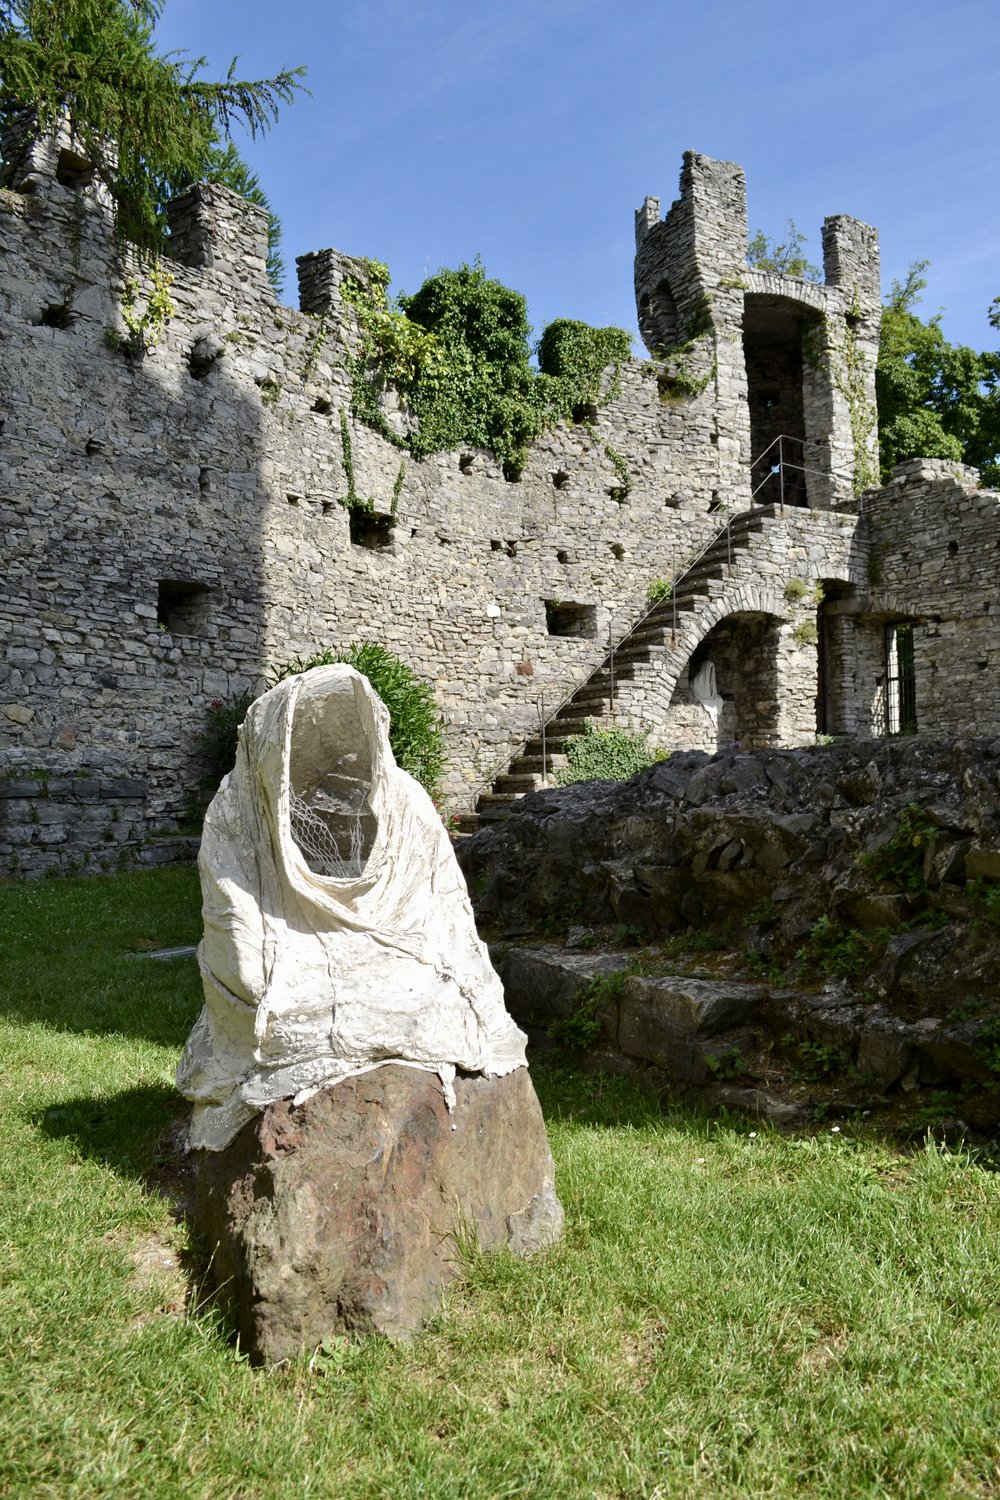 Sculptures in the courtyard